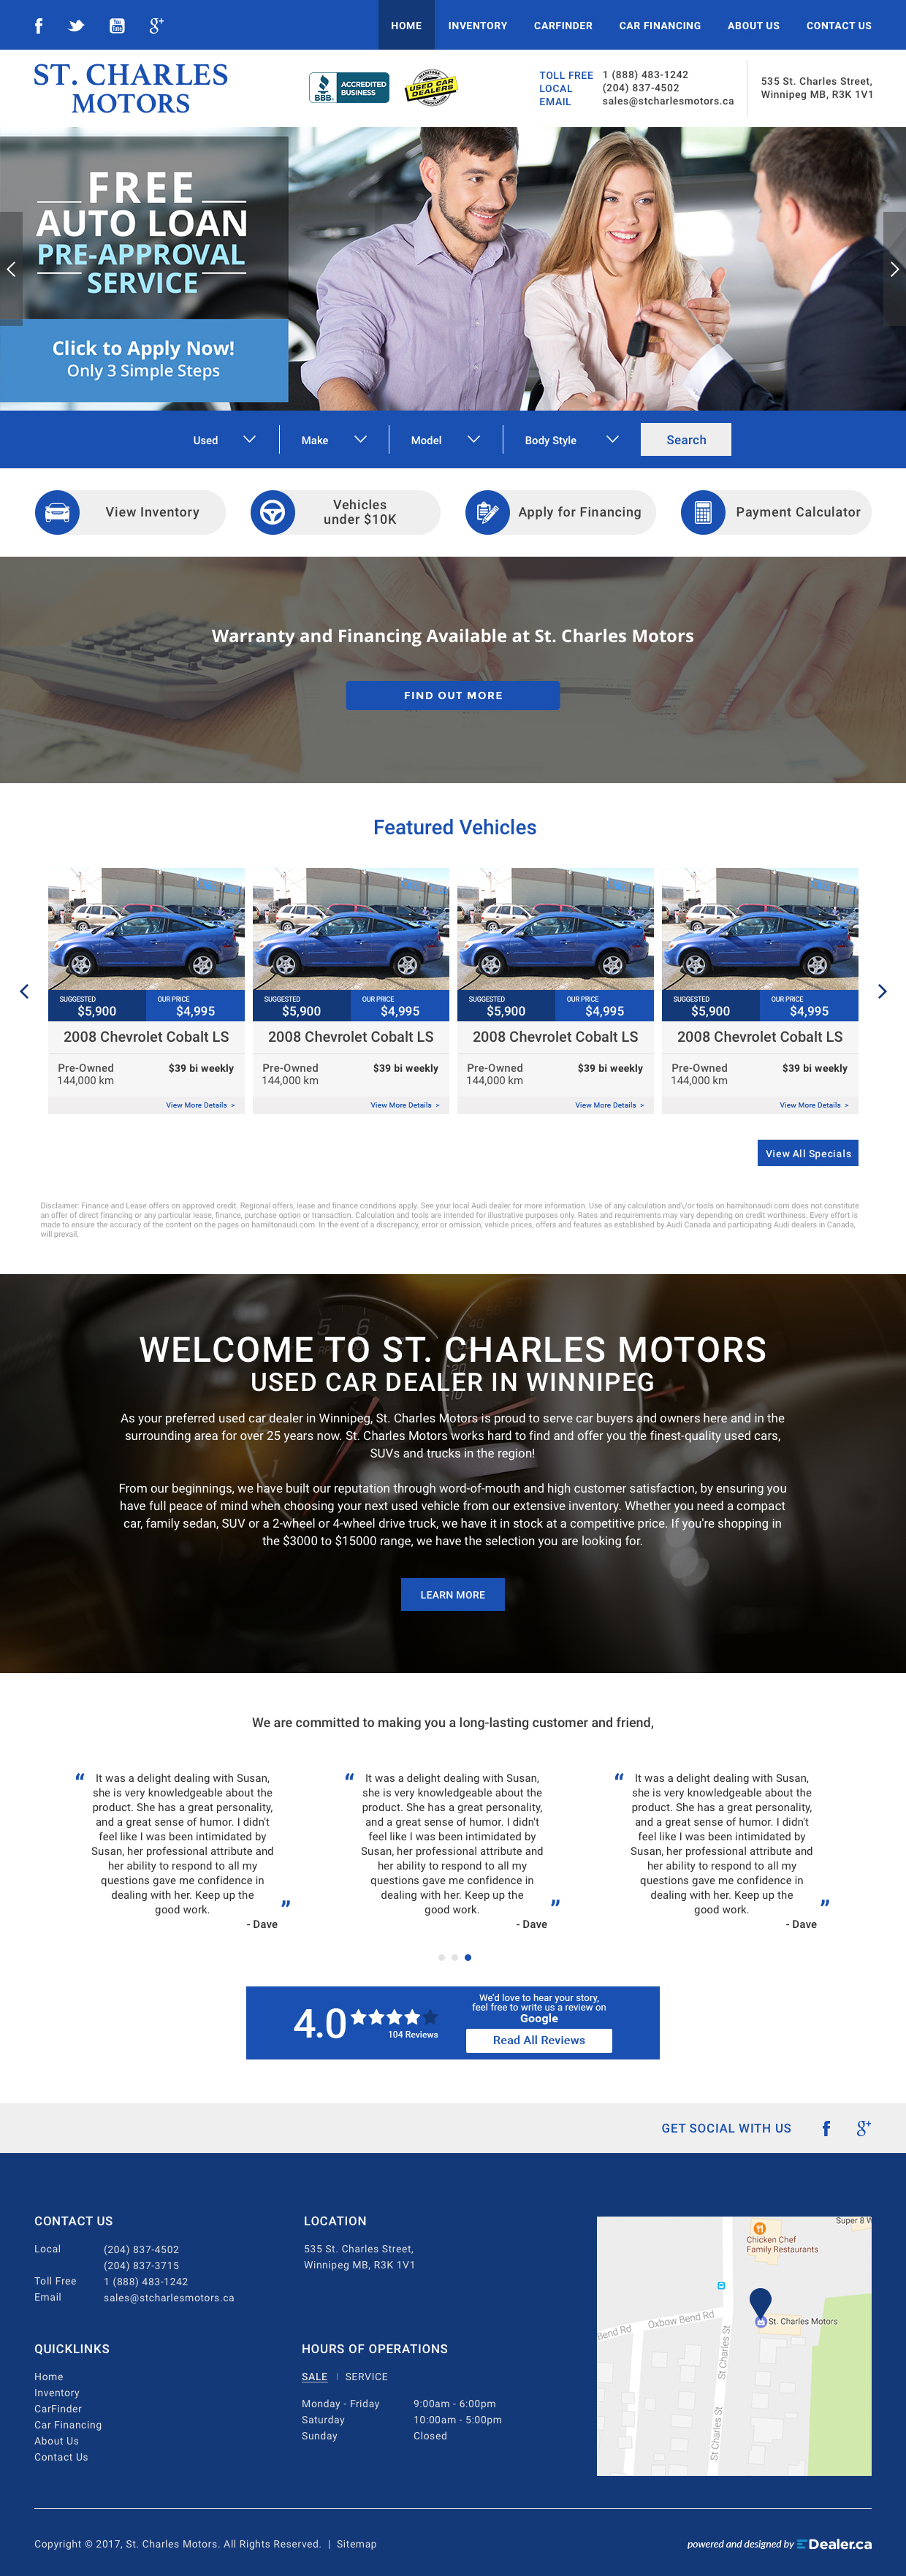 St. Charles Motors-1240px-final